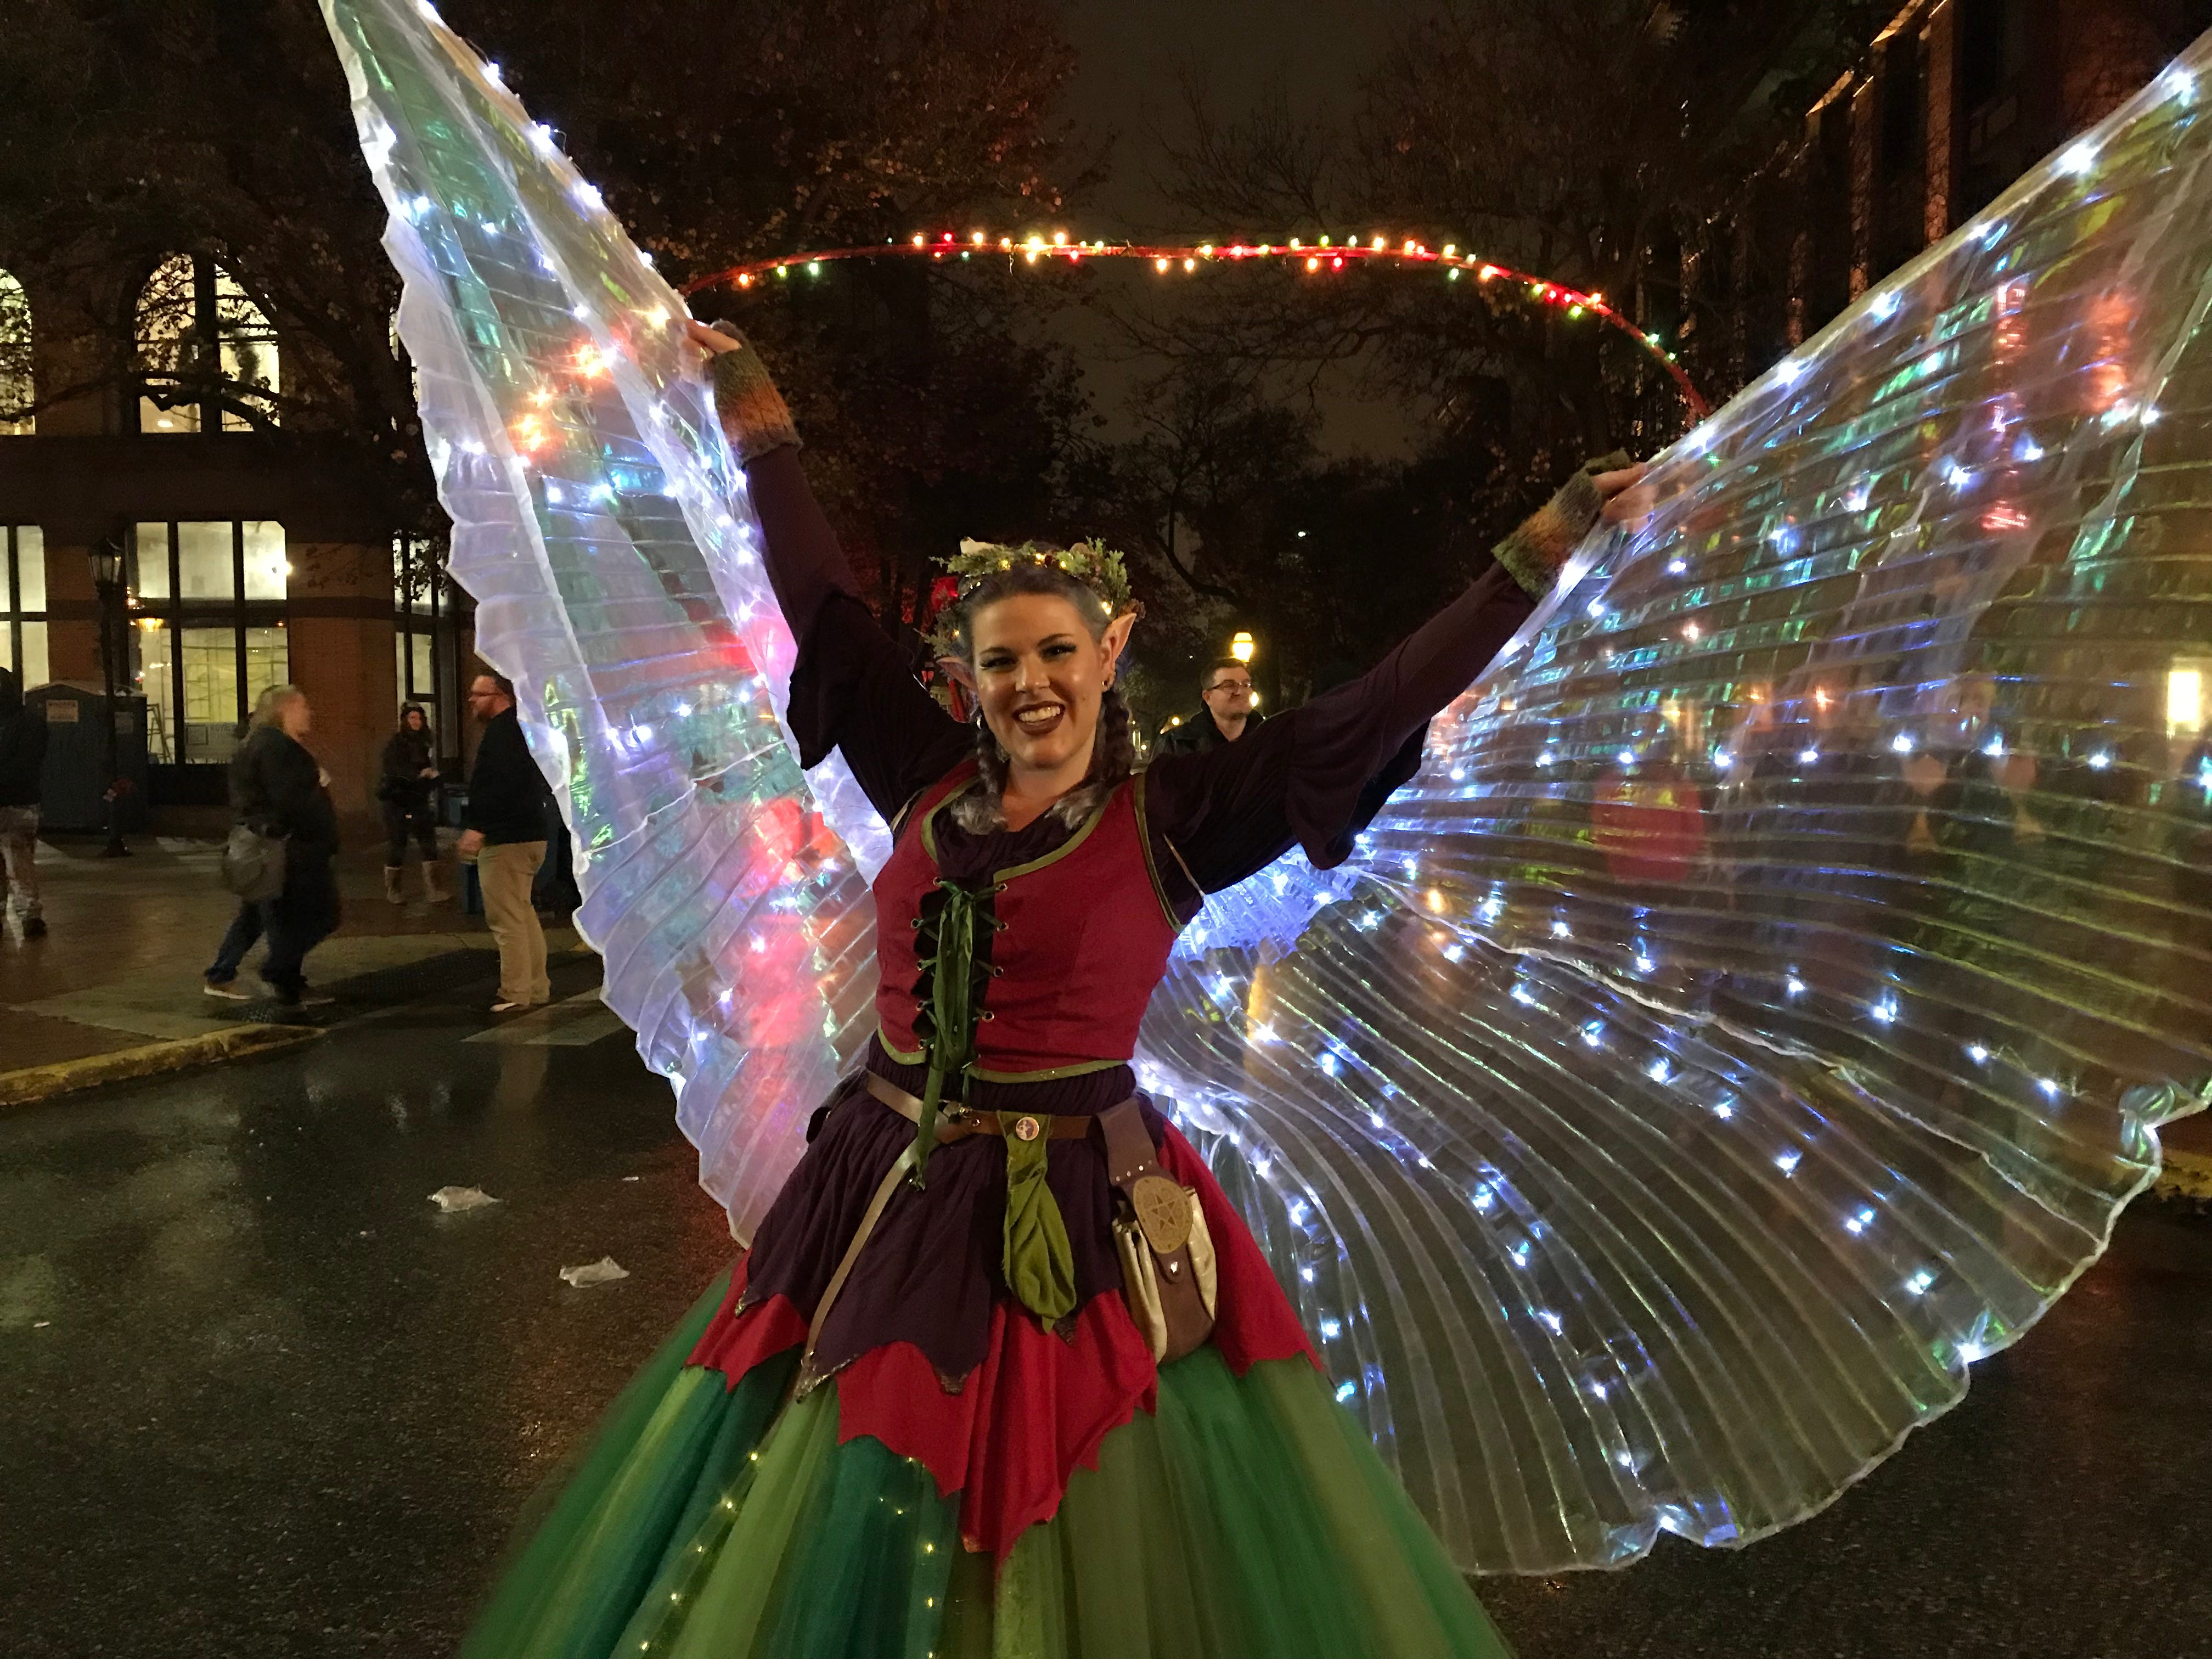 Krystal Younglove is dressed as a Christmas fairy at Light Up York on Saturday, Dec. 1, 2018.